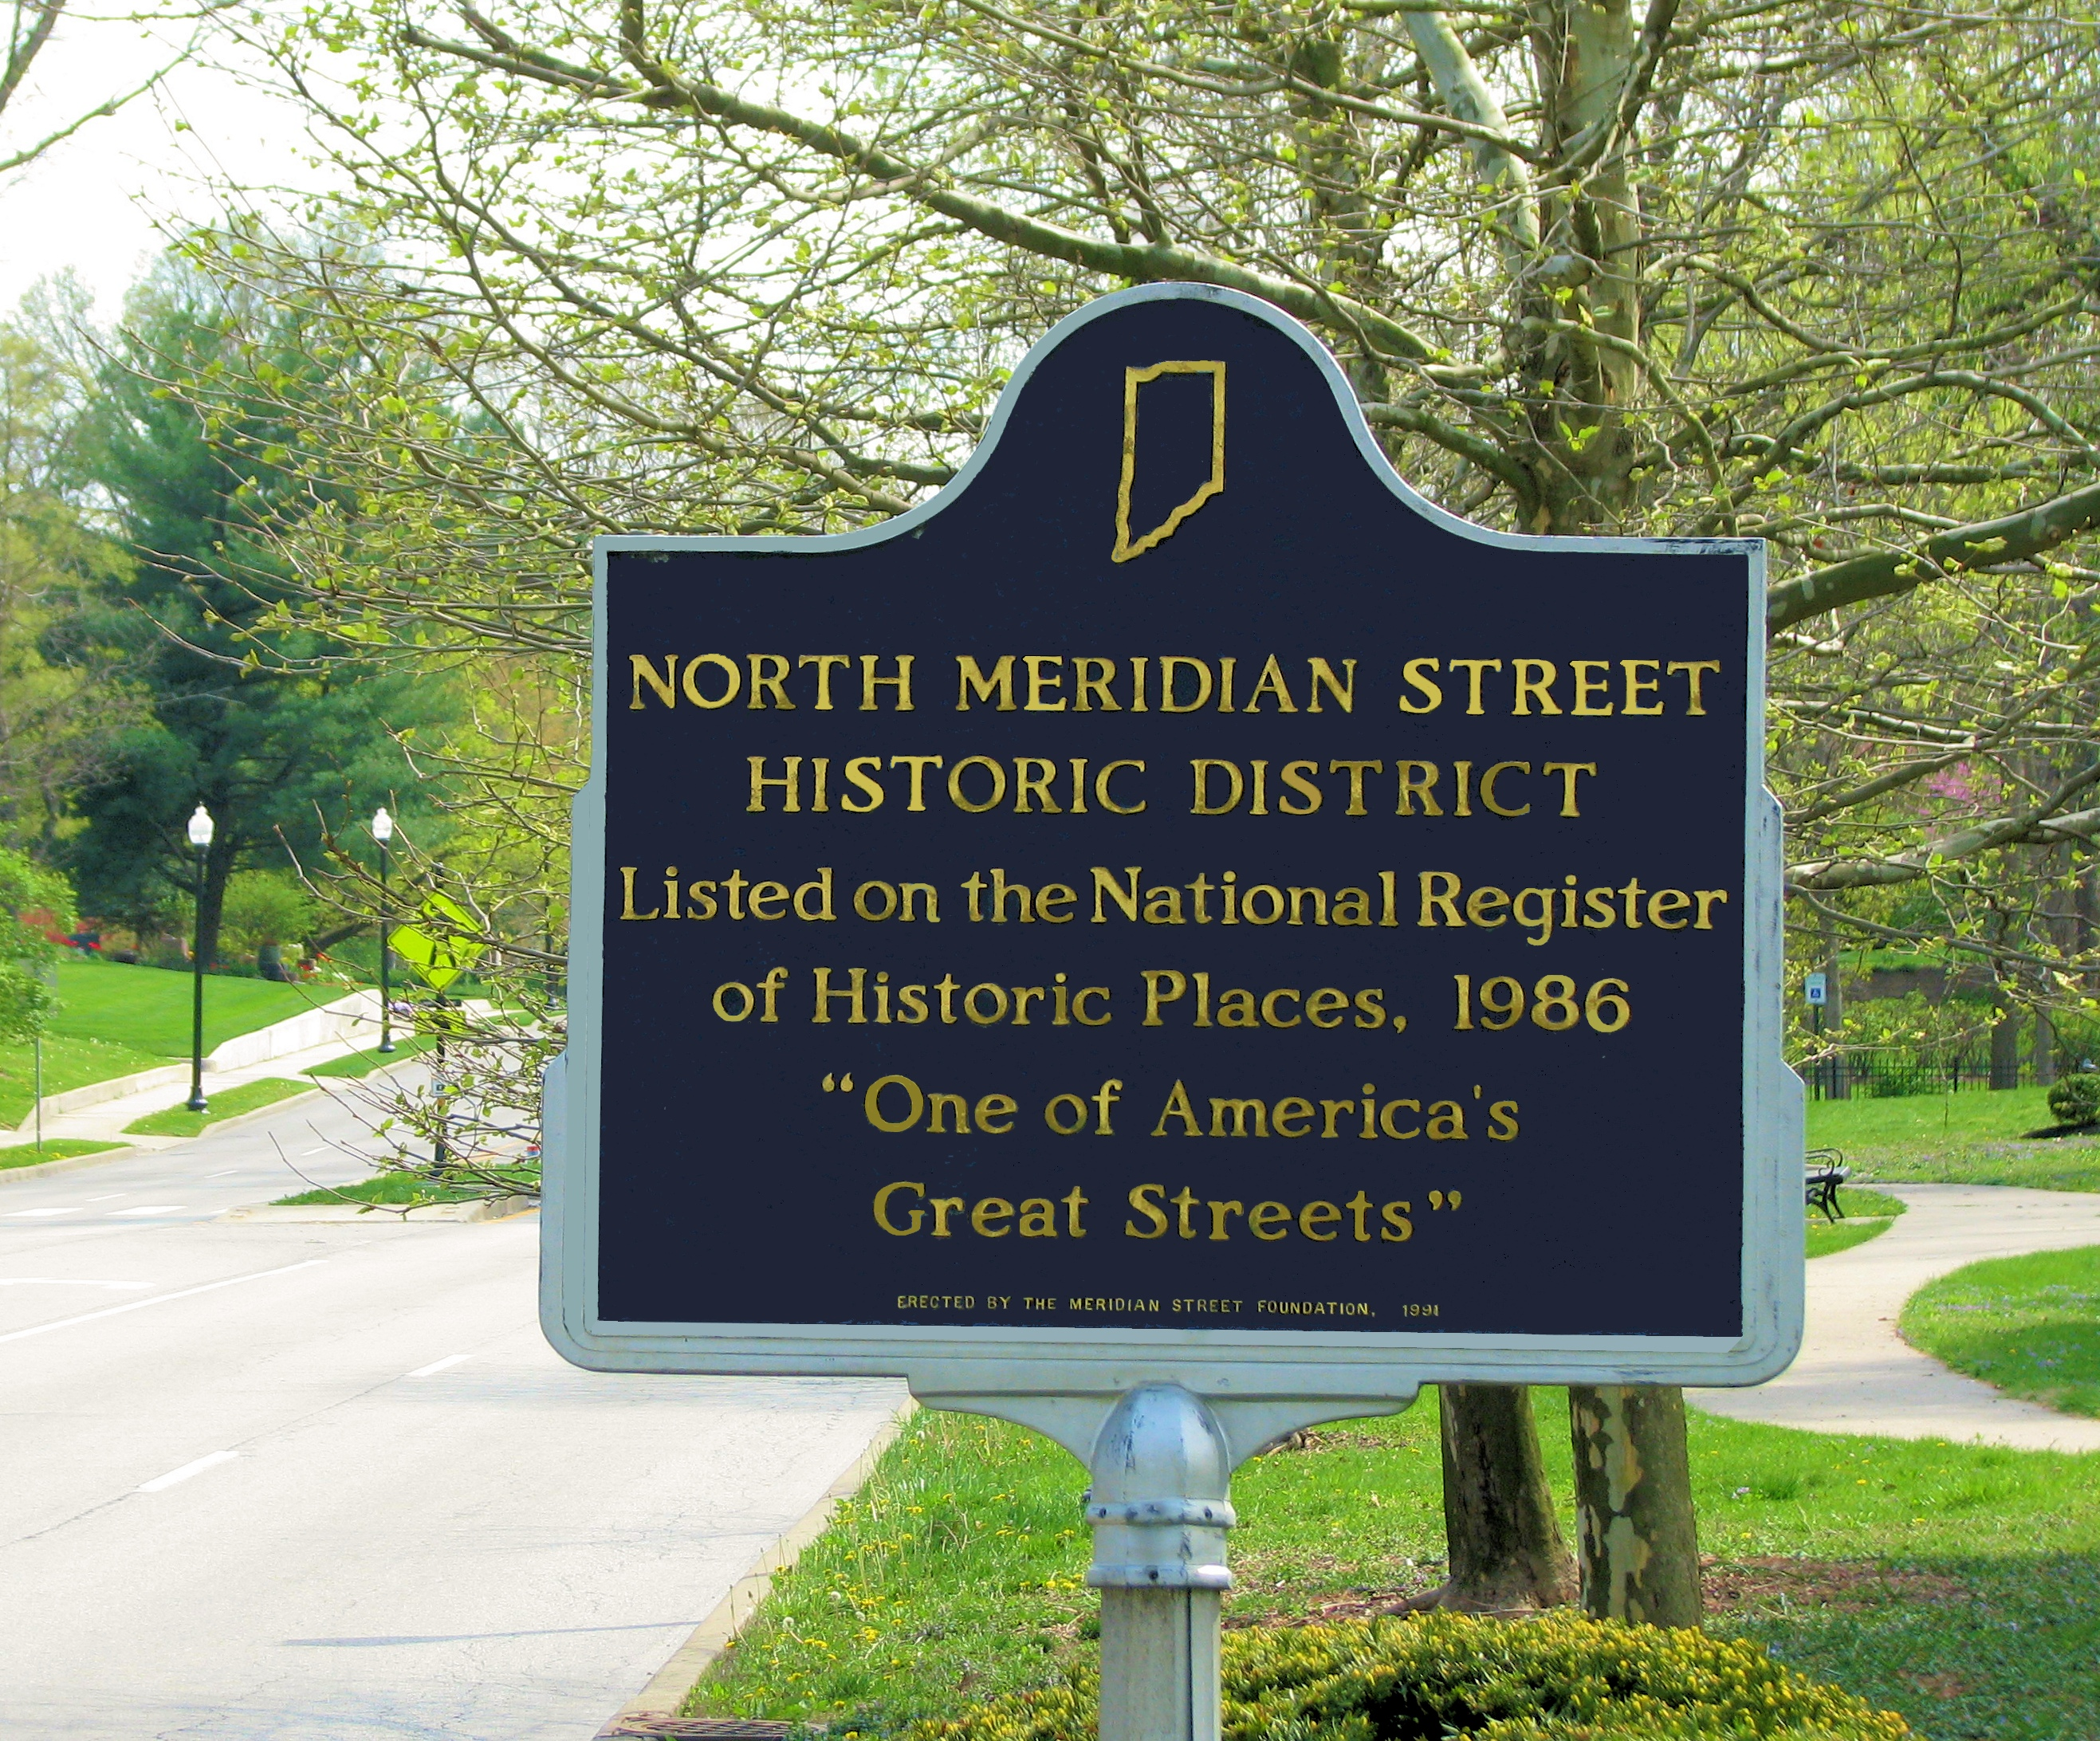 Meridian Street Historic District Sign - Photo by Marg Herder